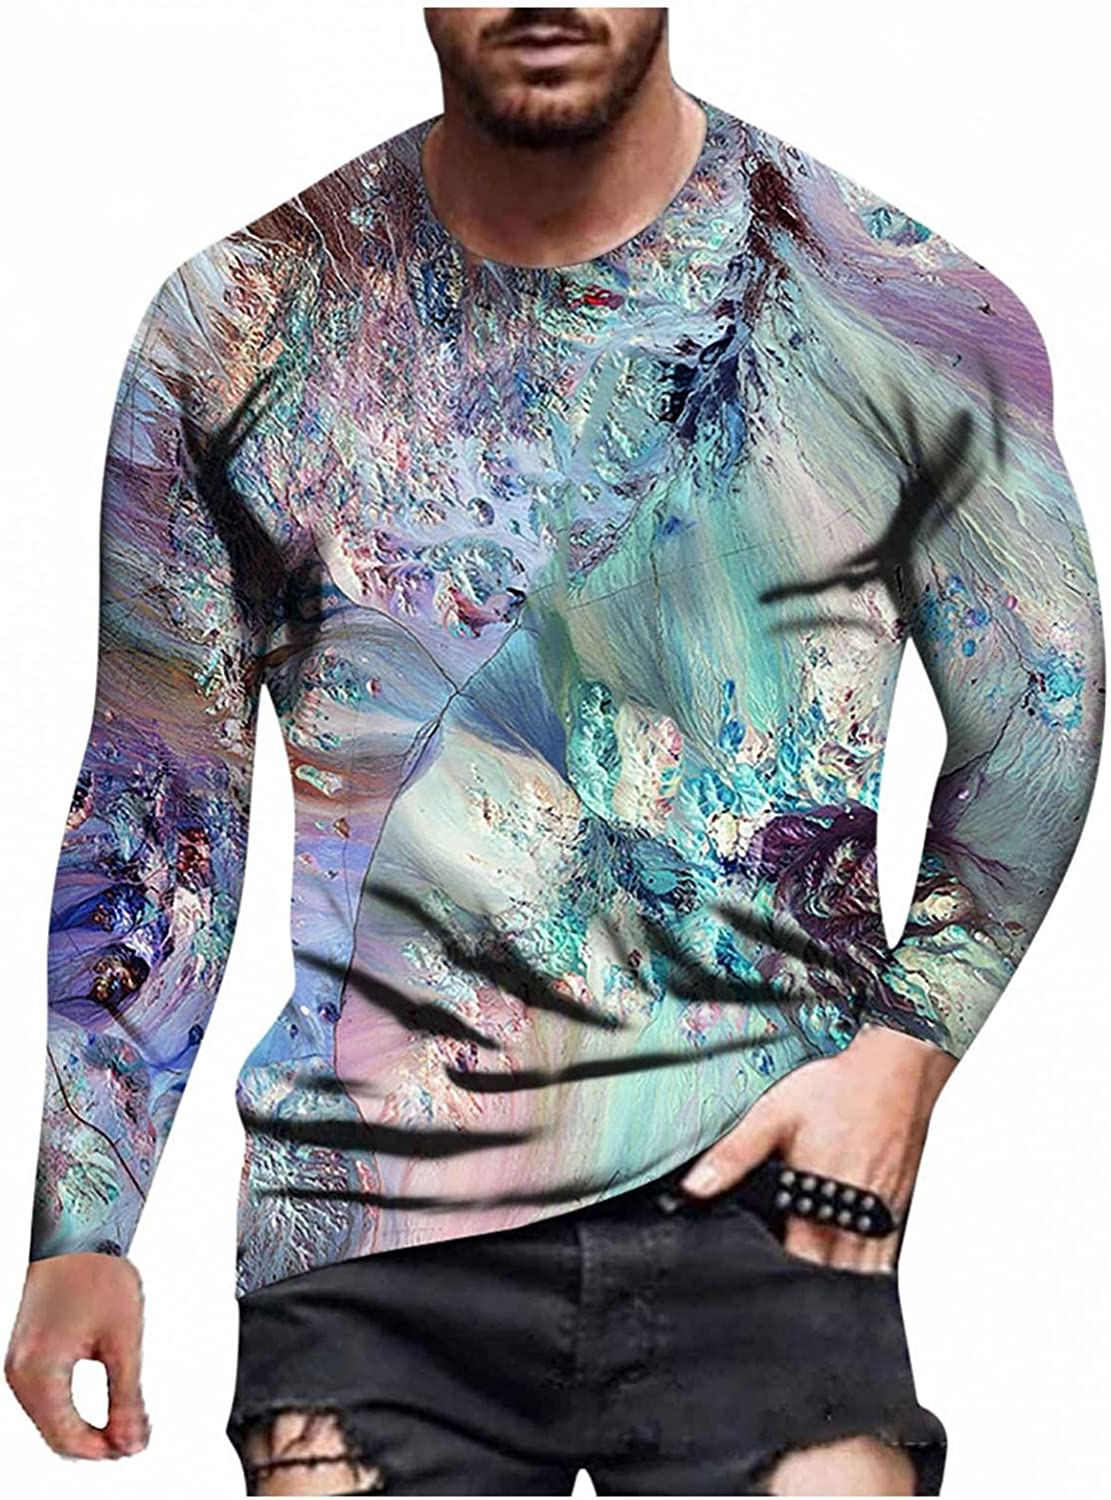 Aayomet Long Sleeve Tee Shirts for Men 3D Painting Abstract Printed Tee Casual Round Neck Men's T Shirts Tops